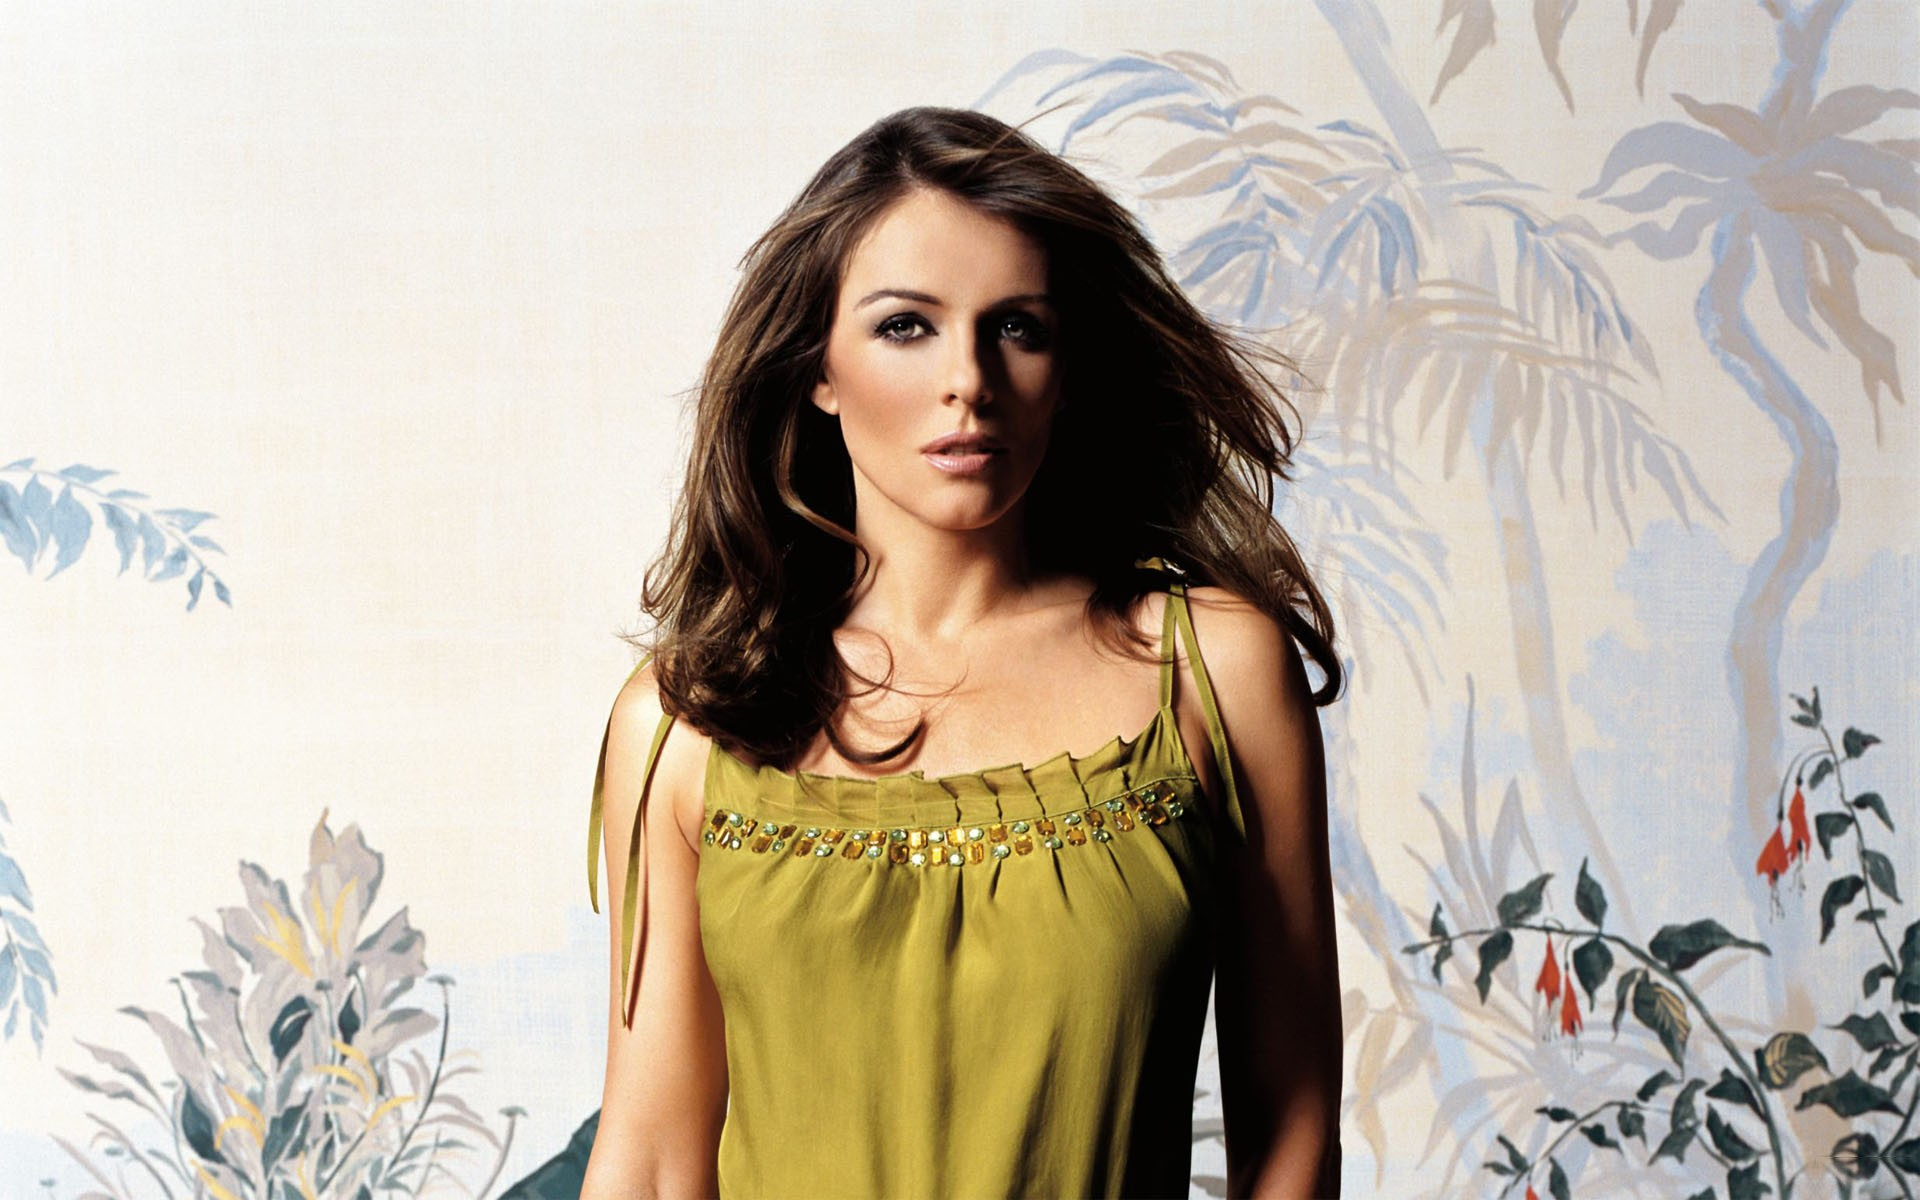 Elizabeth Hurley Wallpapers 1920x1200